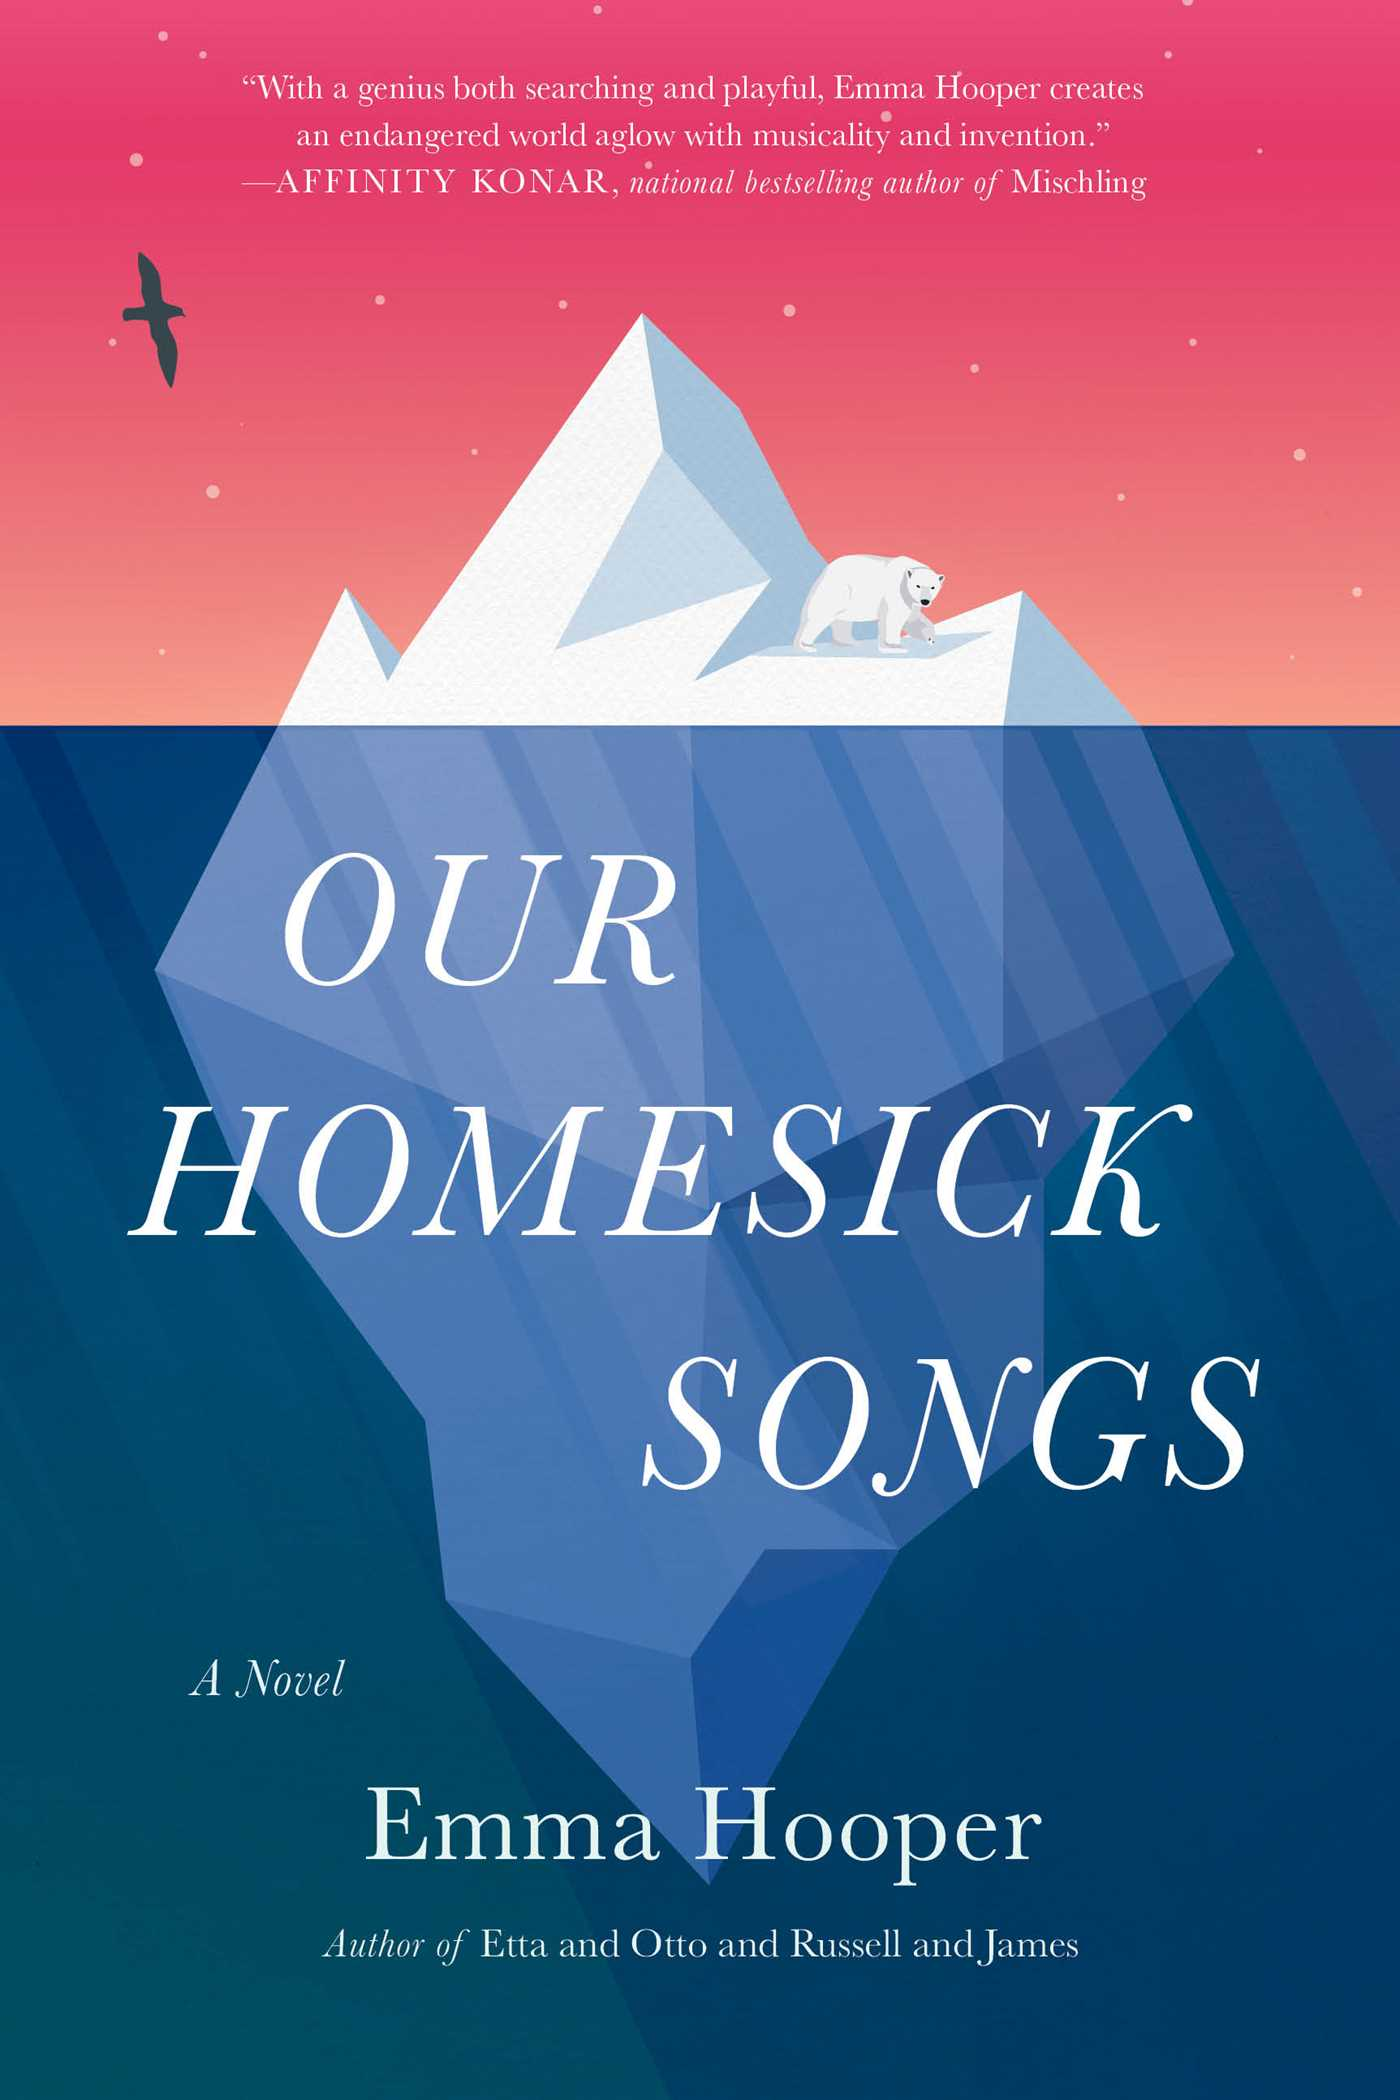 Our homesick songs 9781501124488 hr